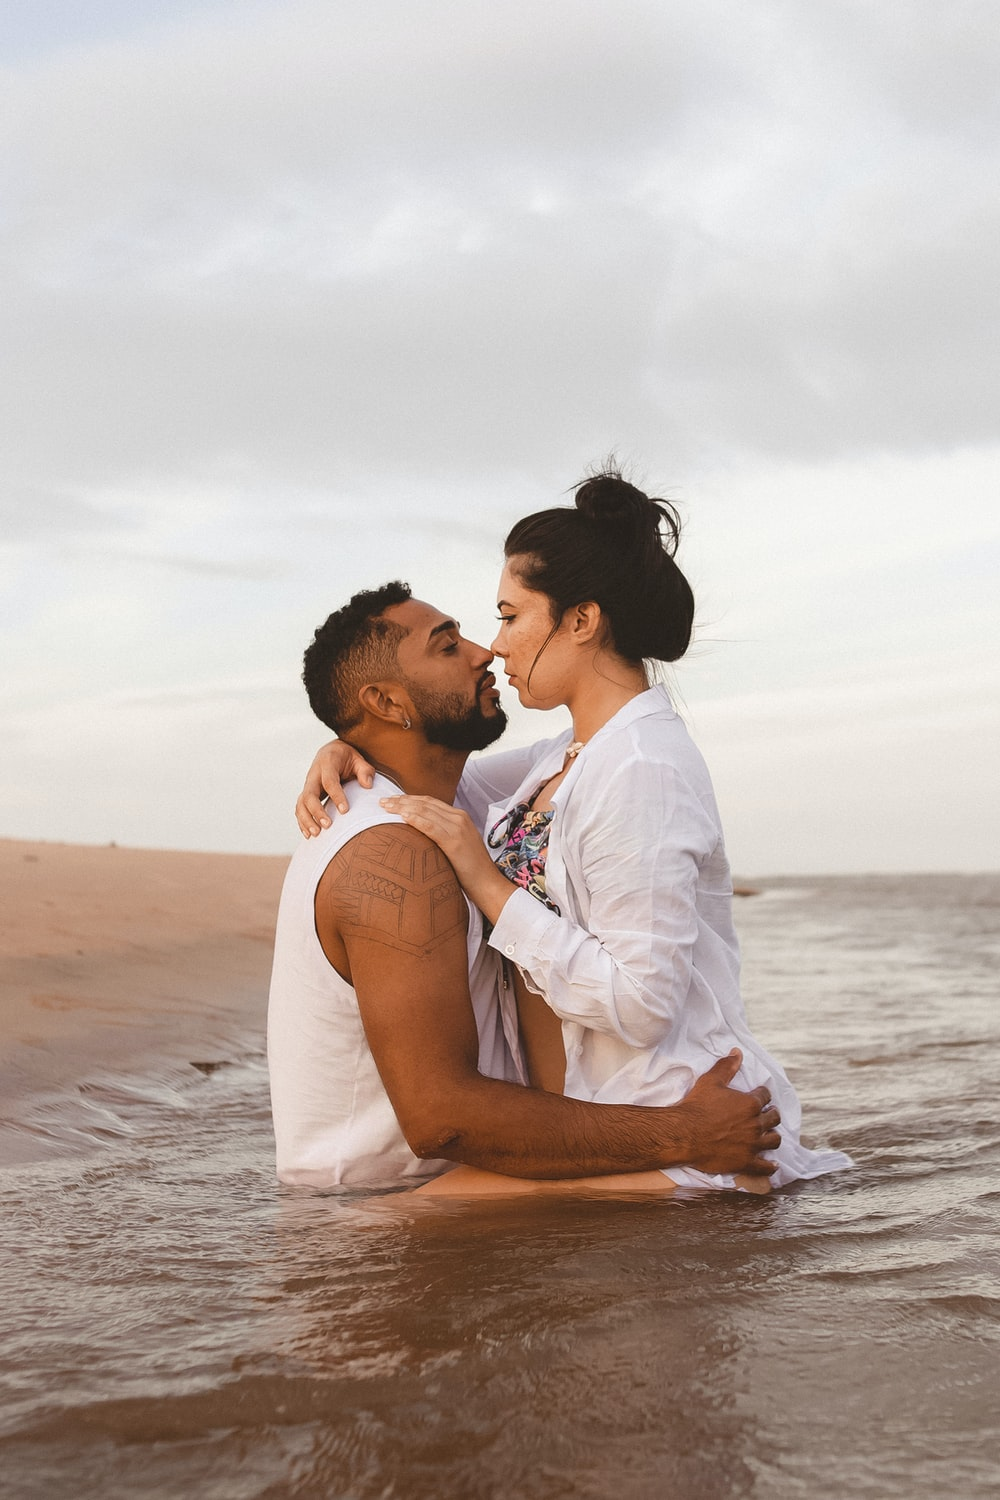 man in white dress shirt kissing woman in white dress on beach during daytime